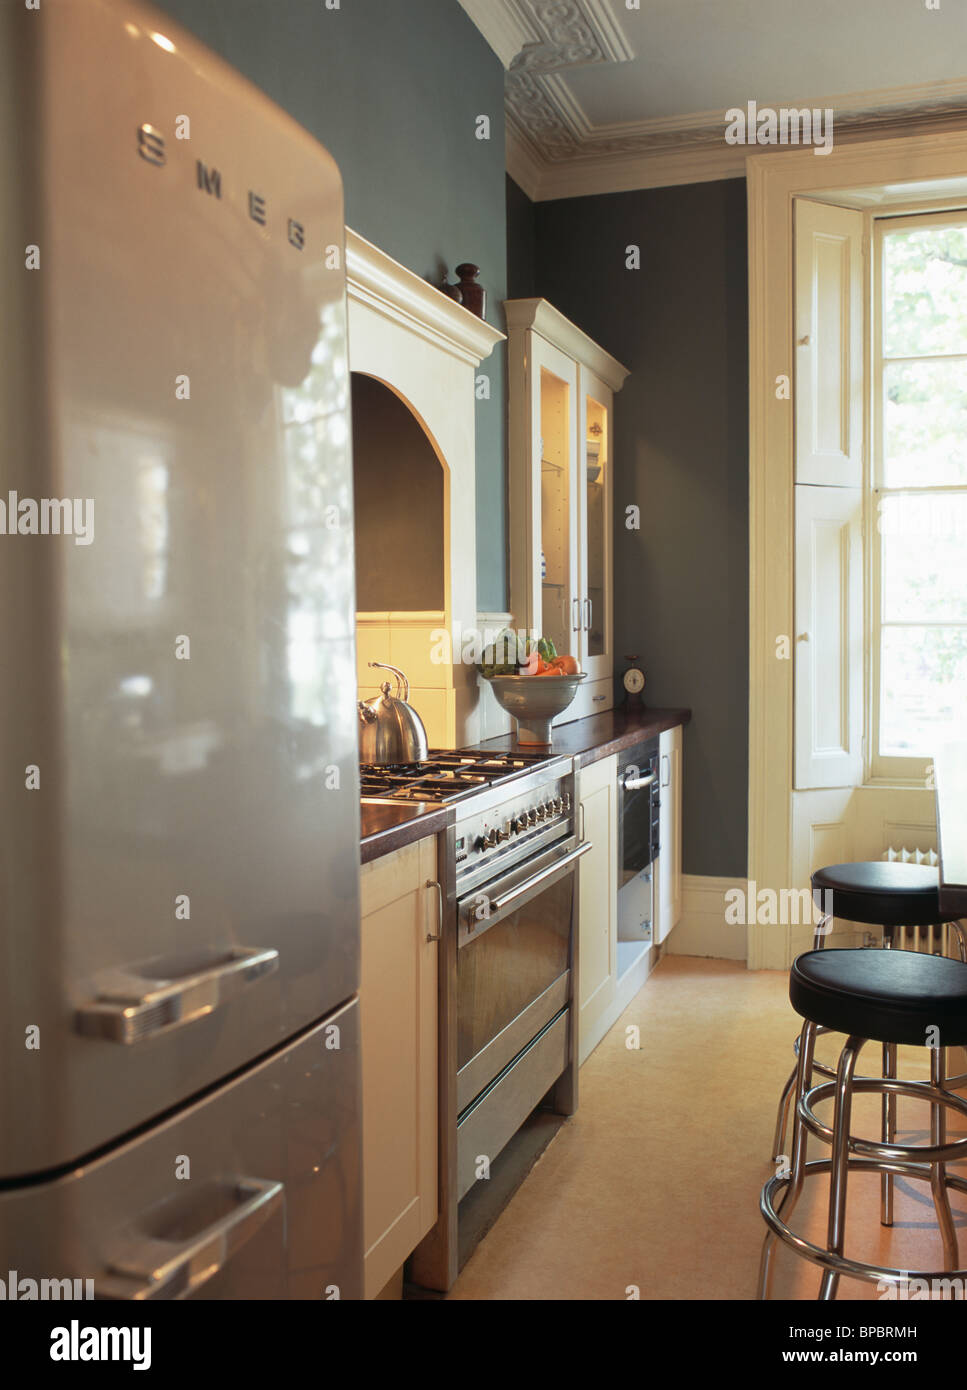 Smeg Fridge Freezer In Gray Blue Townhouse Kitchen With Wooden Flooring And  Range Oven